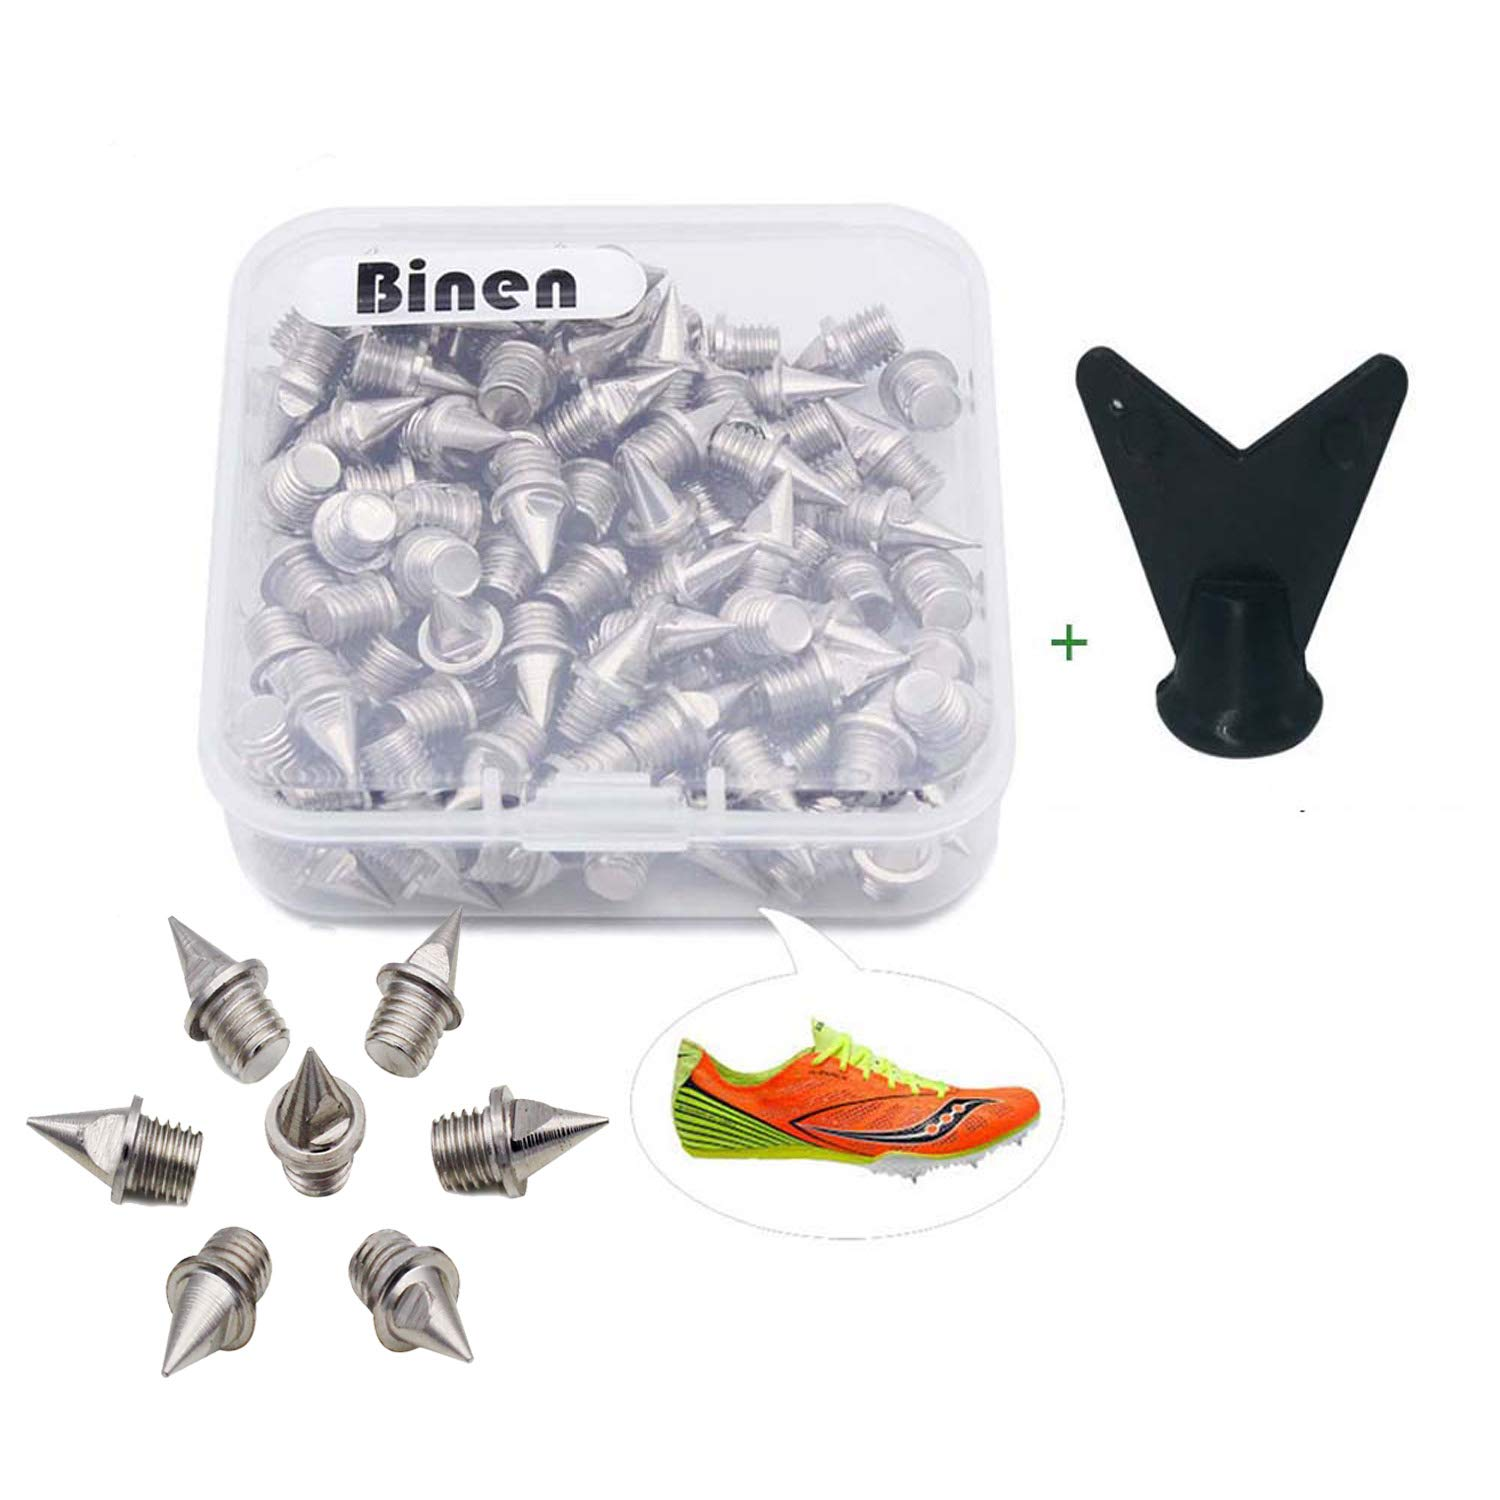 Binen Track Spikes 1/4'' Length Pyramid Shoes Spike Replacement Stainless Steel for Track Sprint Cross Country with Free Wrench,110 Pieces